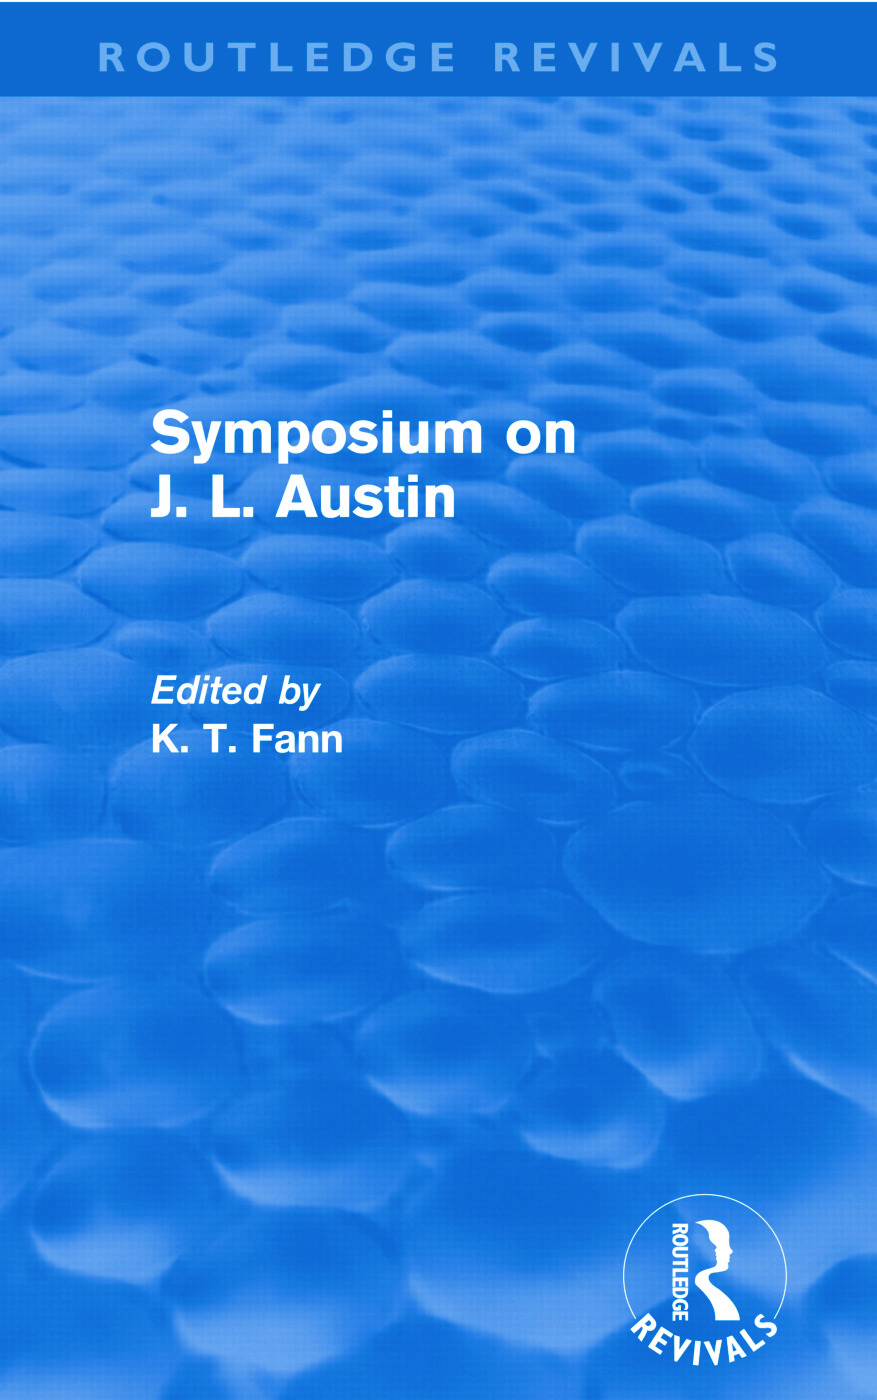 Symposium on J. L. Austin (Routledge Revivals) (Paperback) book cover